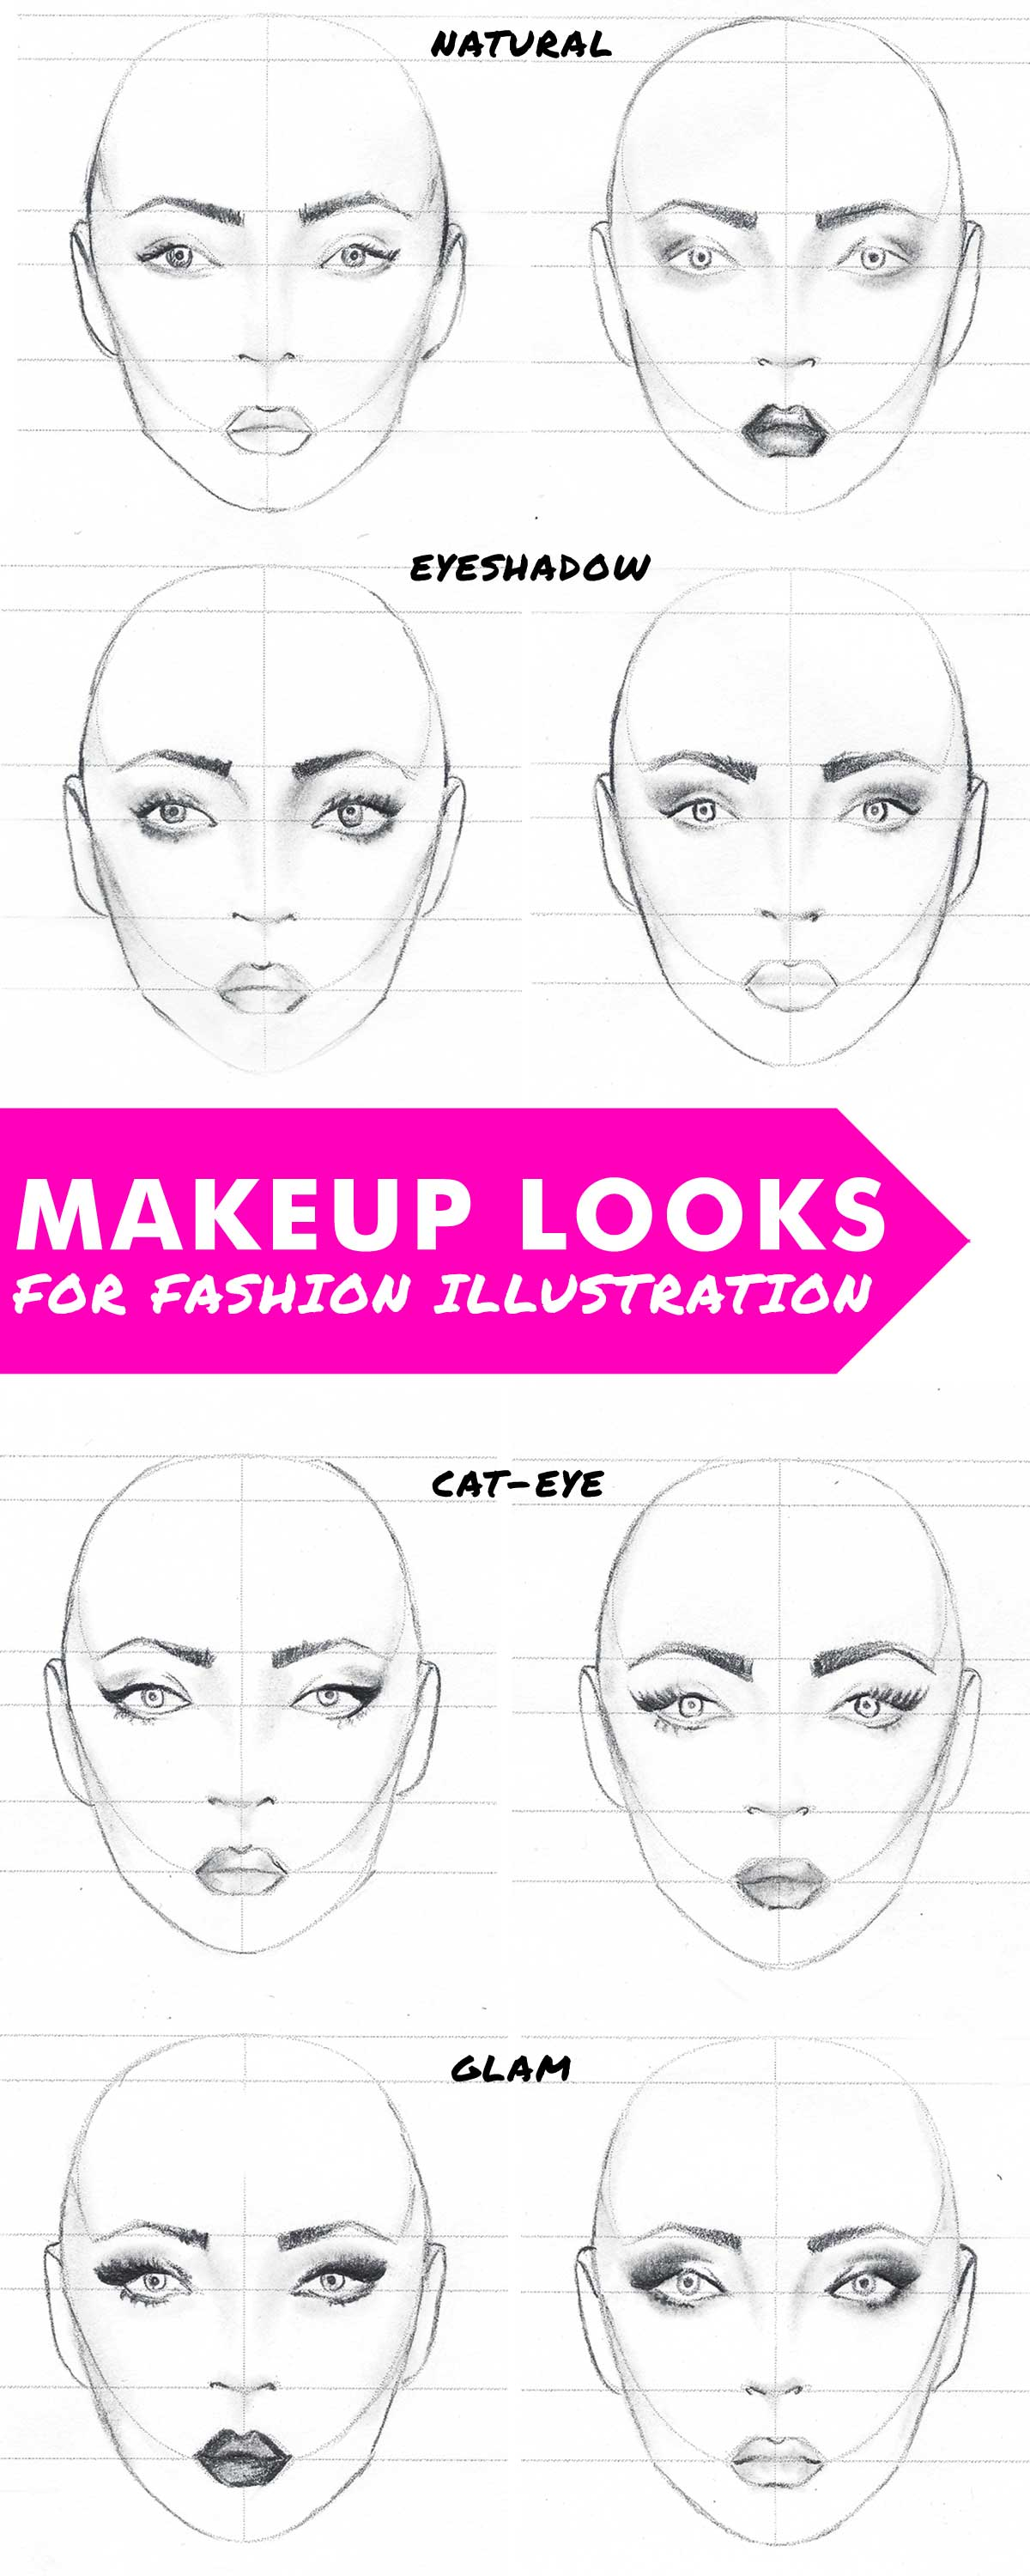 MAKEUP-IDEAS-FOR-FASHION.jpg